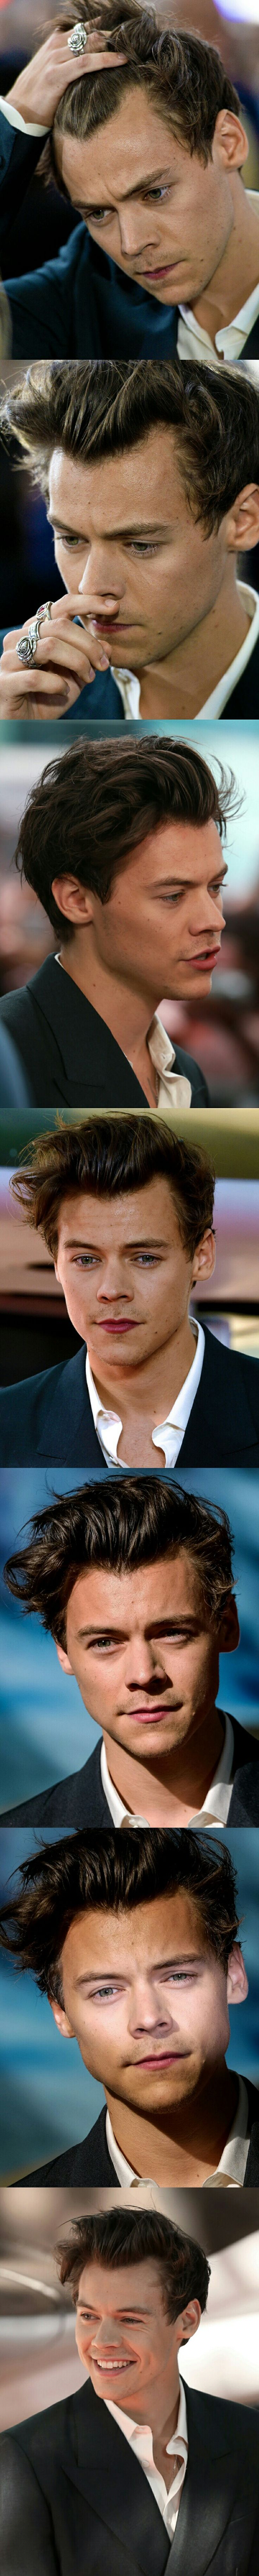 Harry Styles at the world premiere for Dunkirk